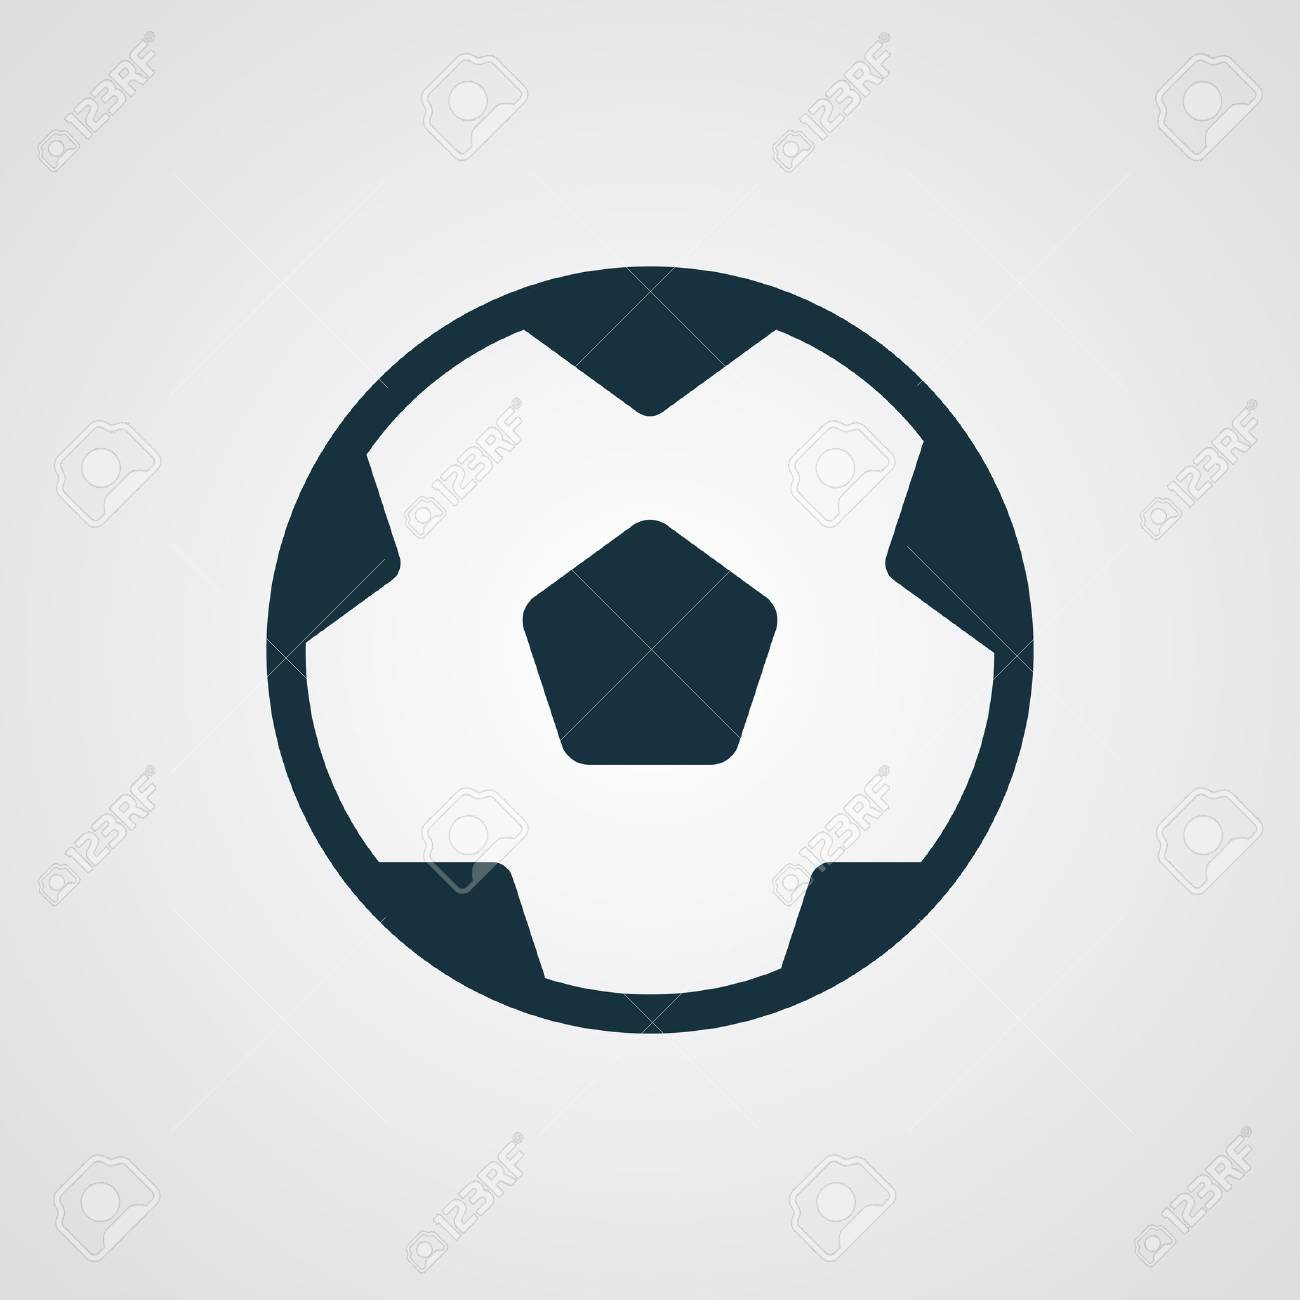 flat football icon royalty free cliparts vectors and stock